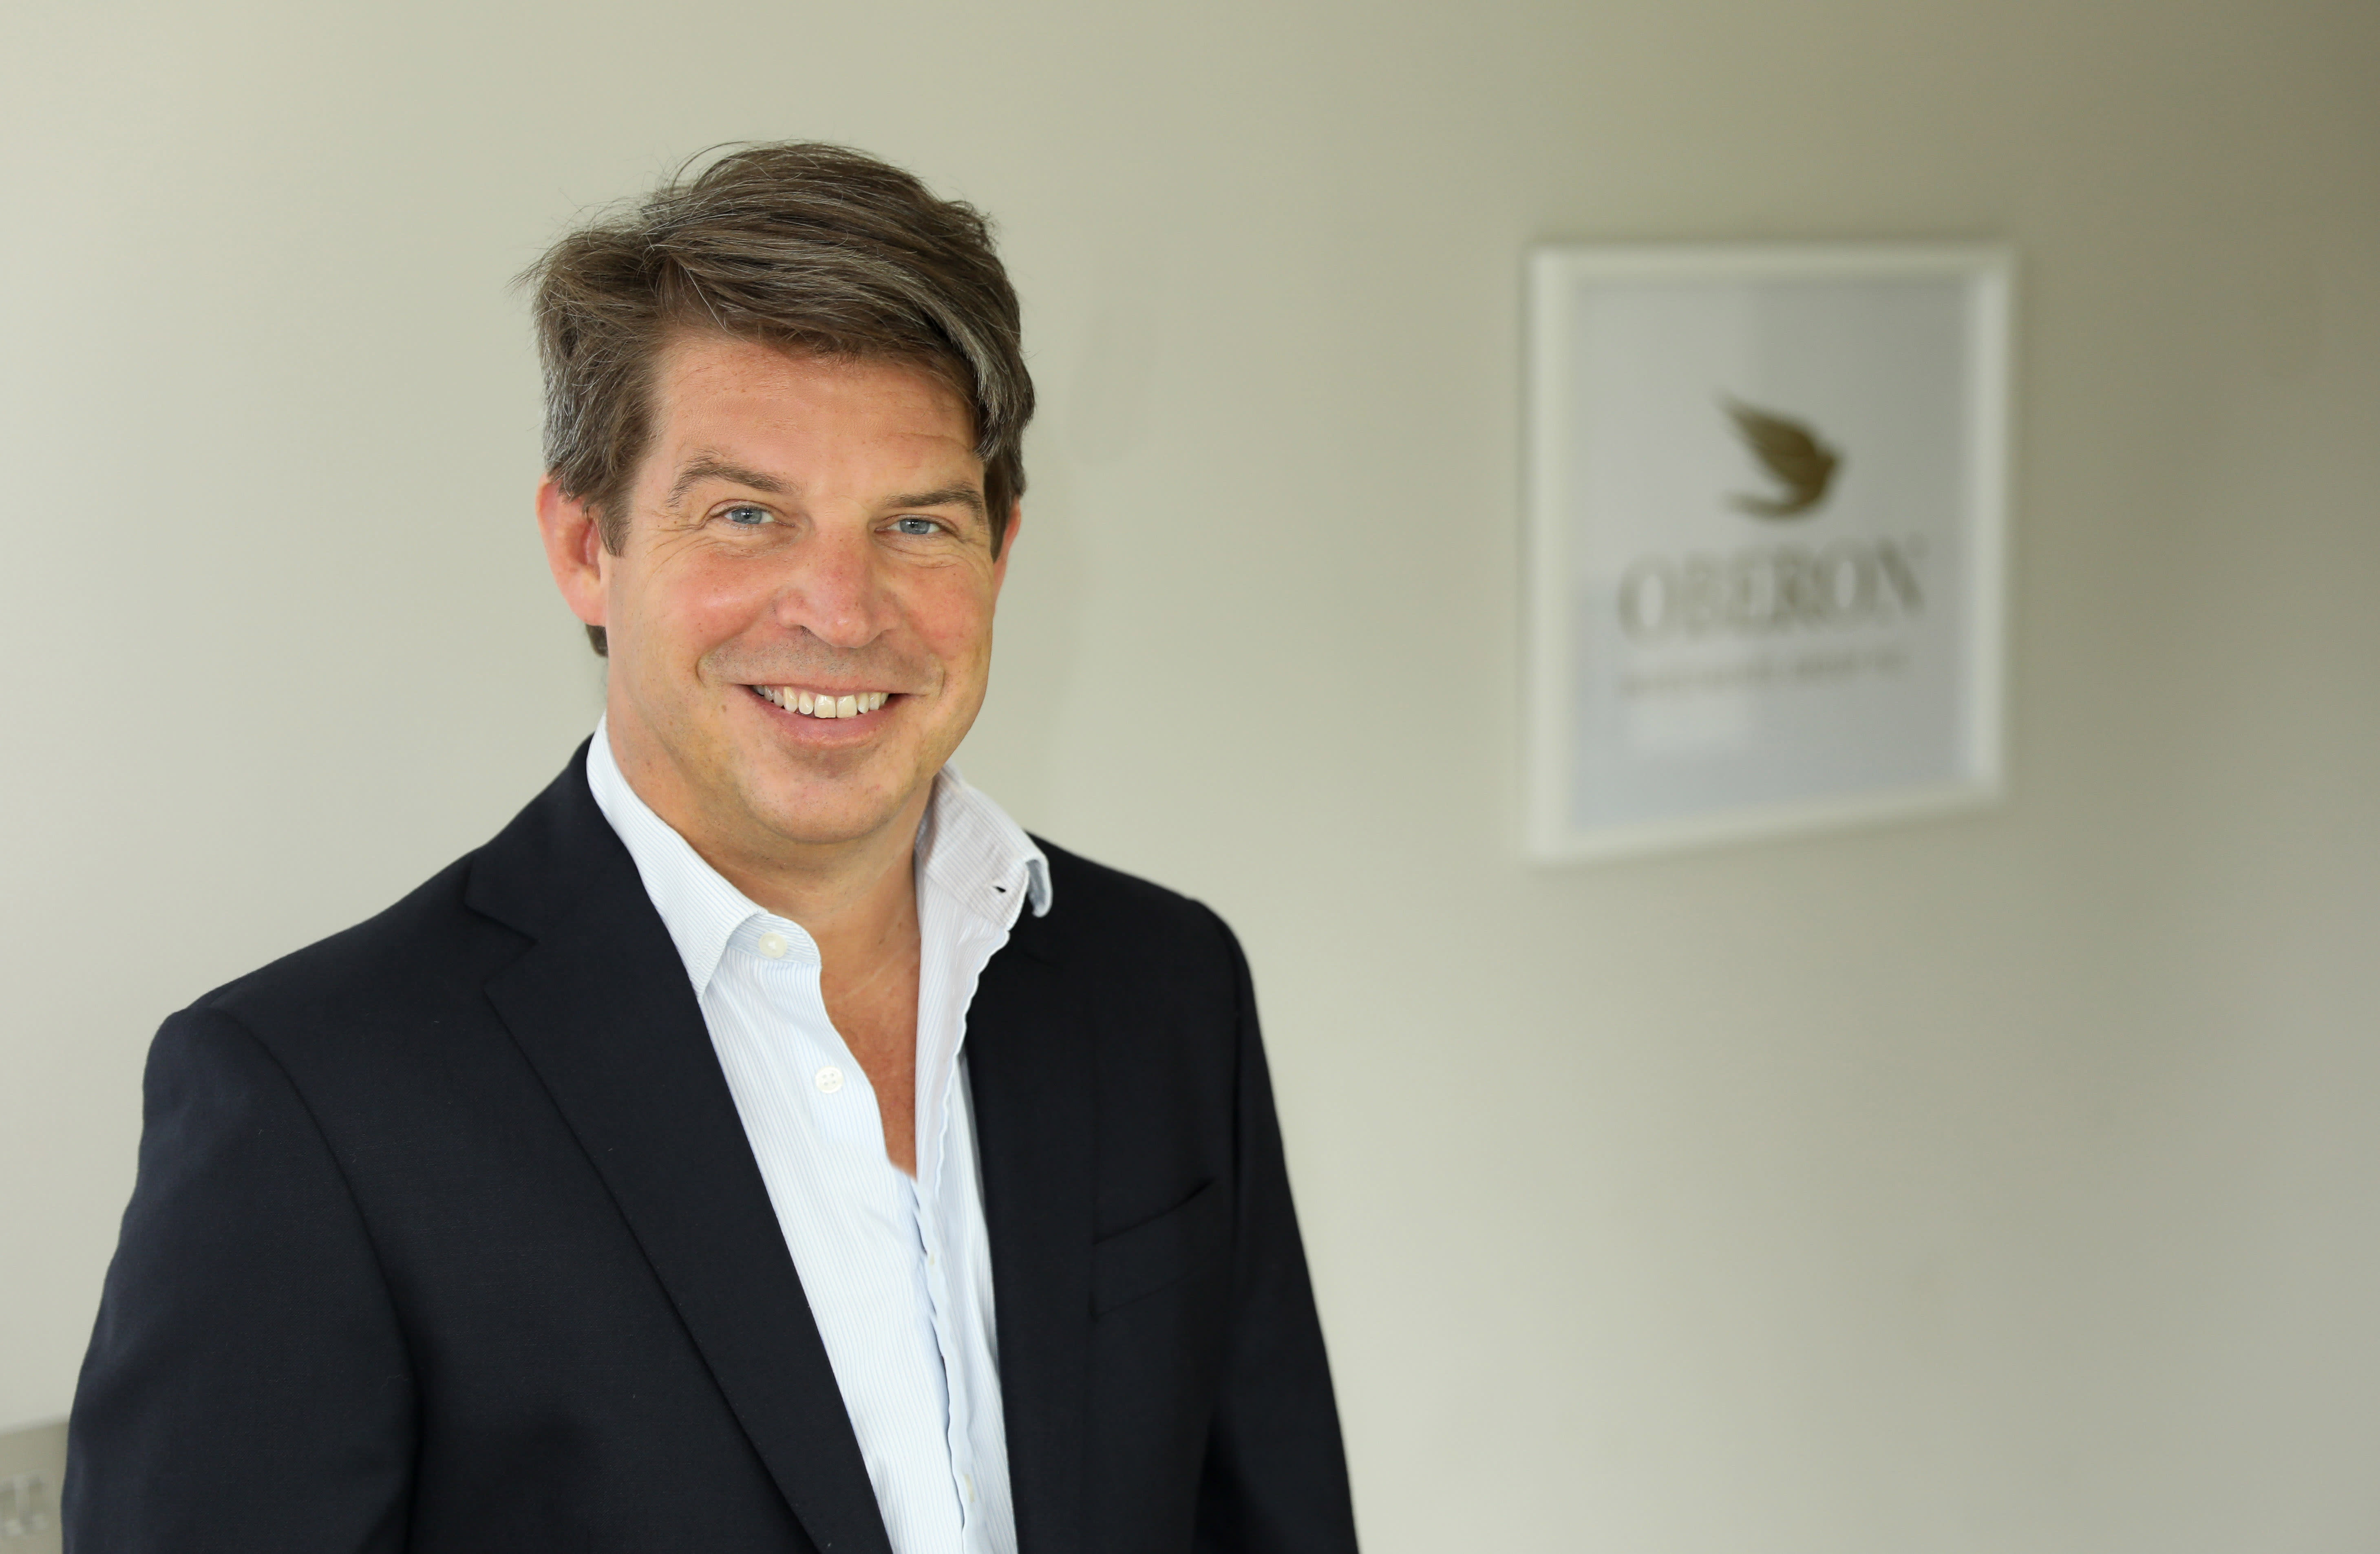 Oberon CEO: 'We don't chase acquisitions'